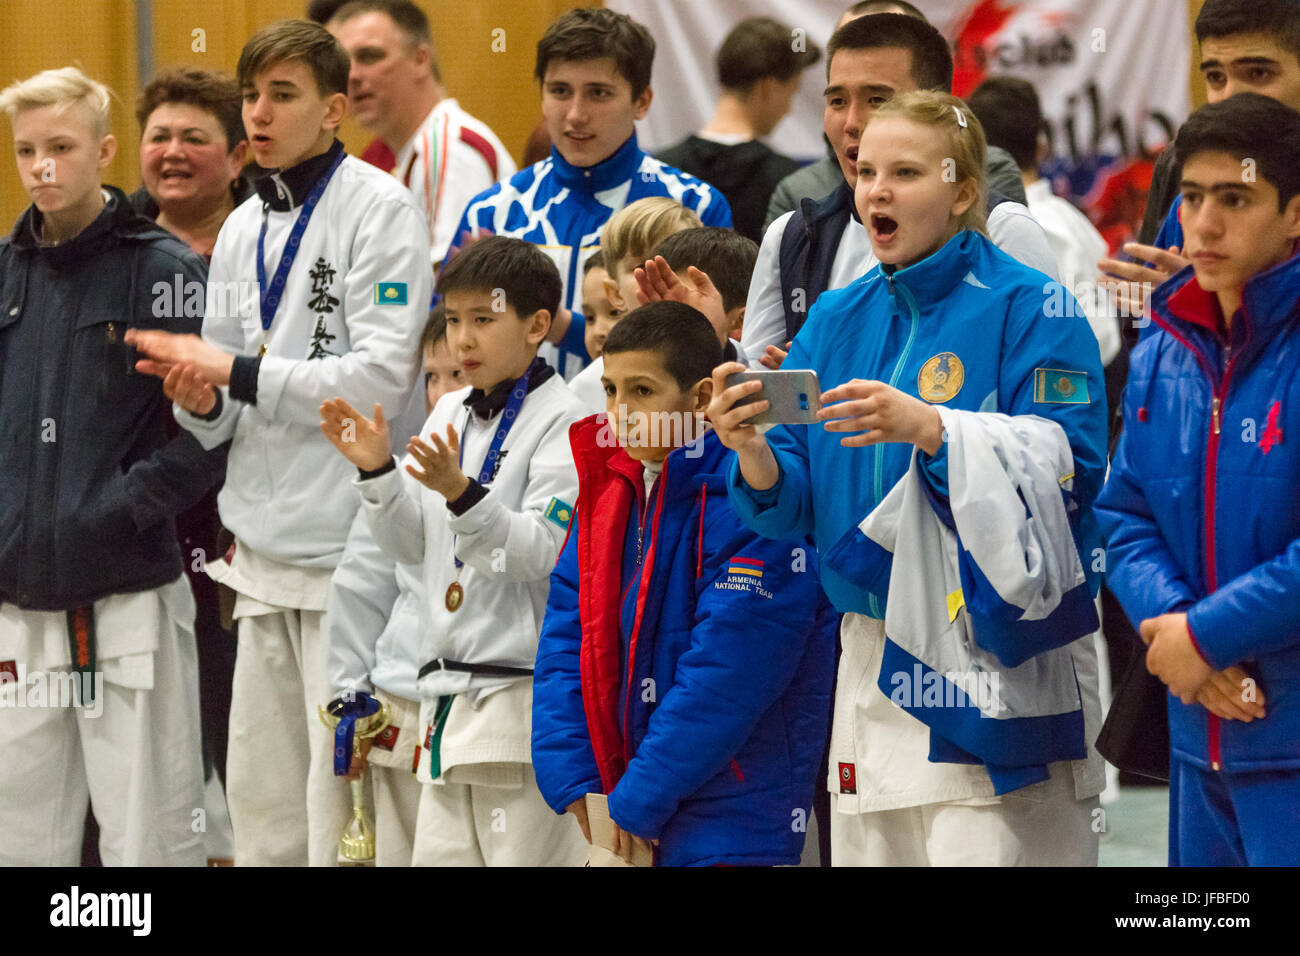 BERLIN - MARCH 18, 2017: Emotional fans. European championship Kyokushin World Union (KWU) for Children and Youth. - Stock Image